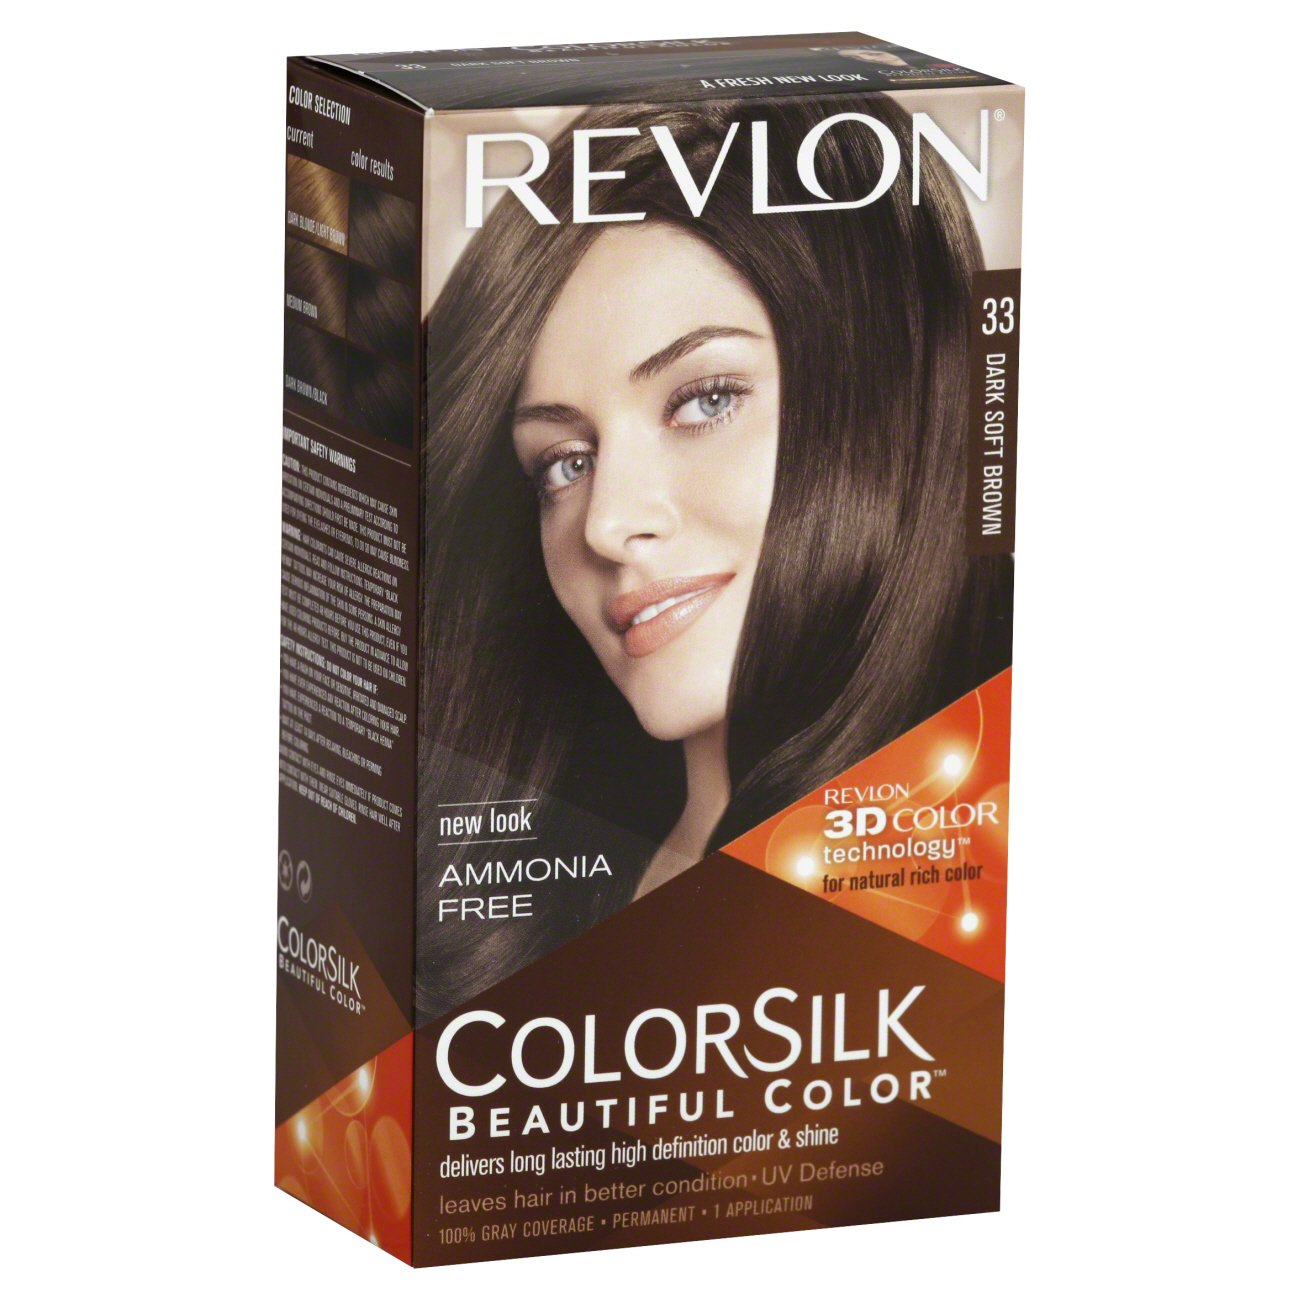 Hair Color Shop Heb Everyday Low Prices